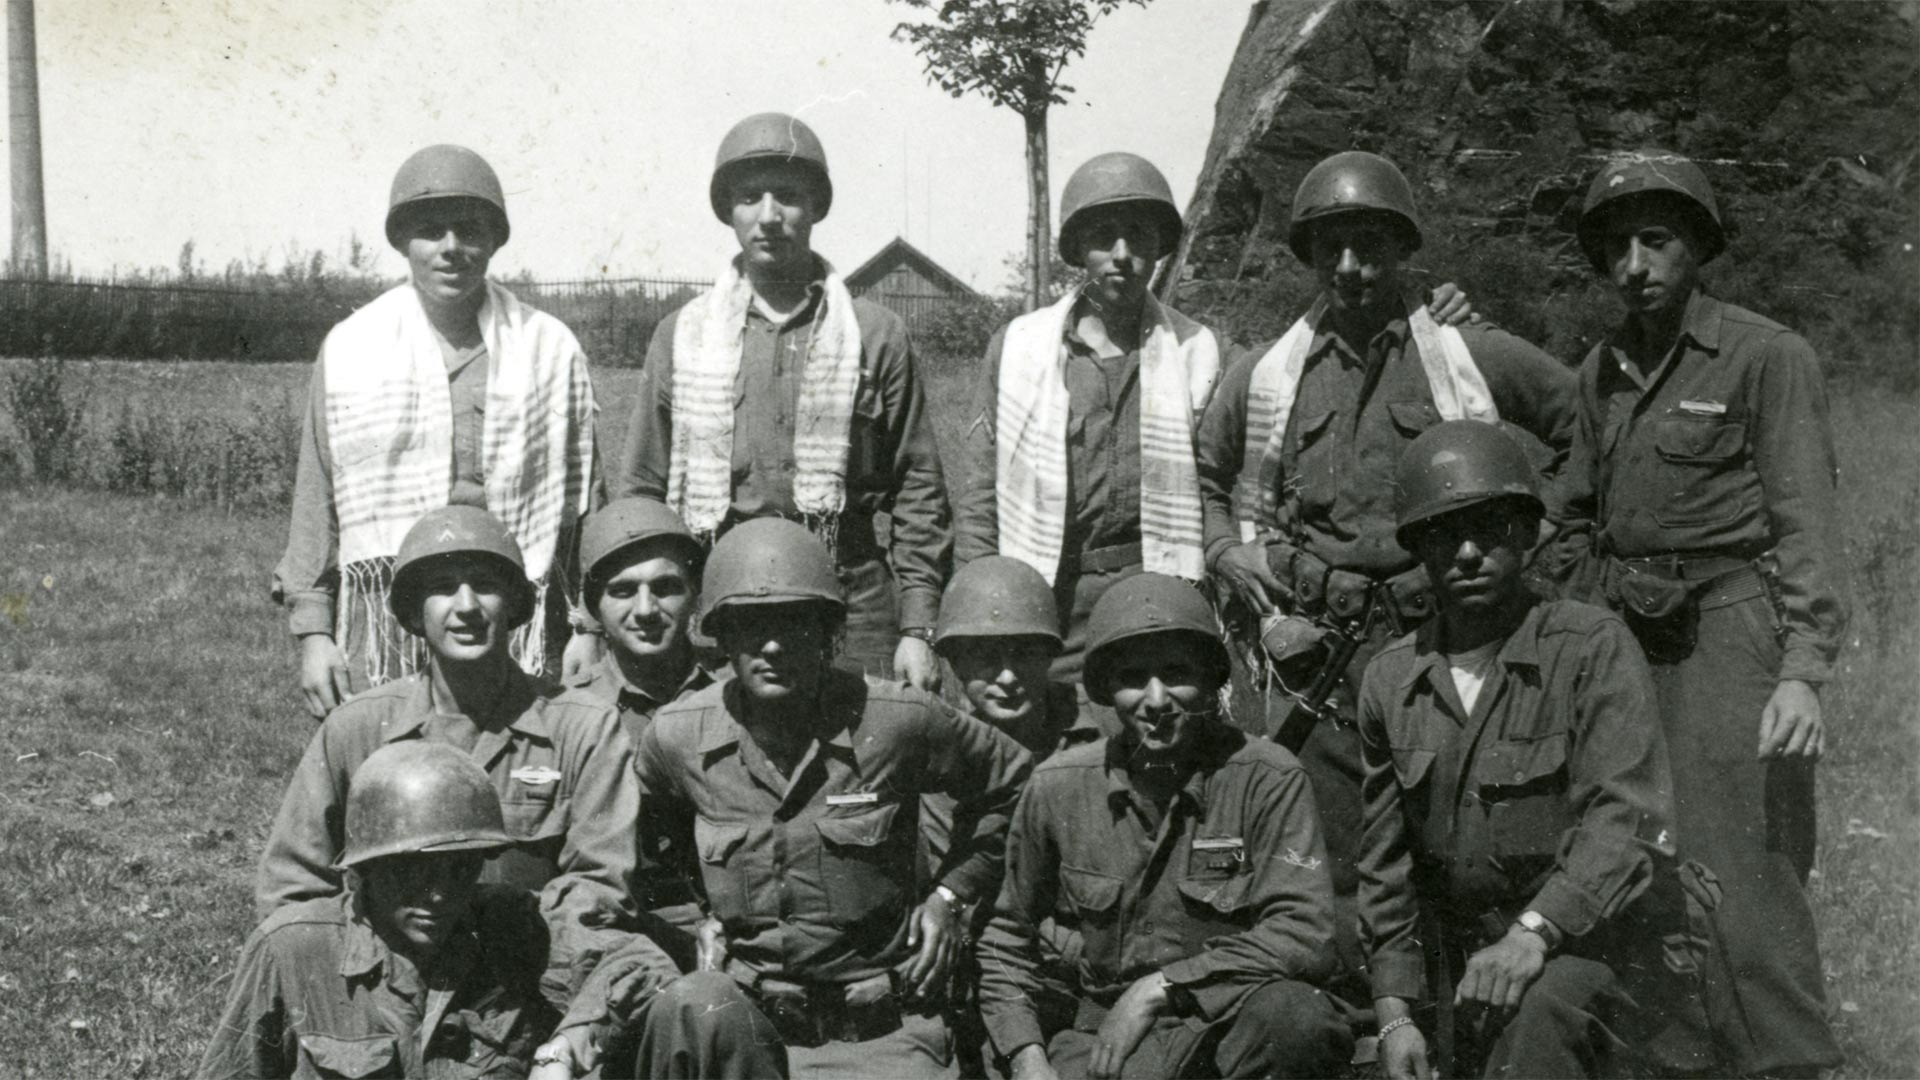 Jewish American soldiers in WWII.